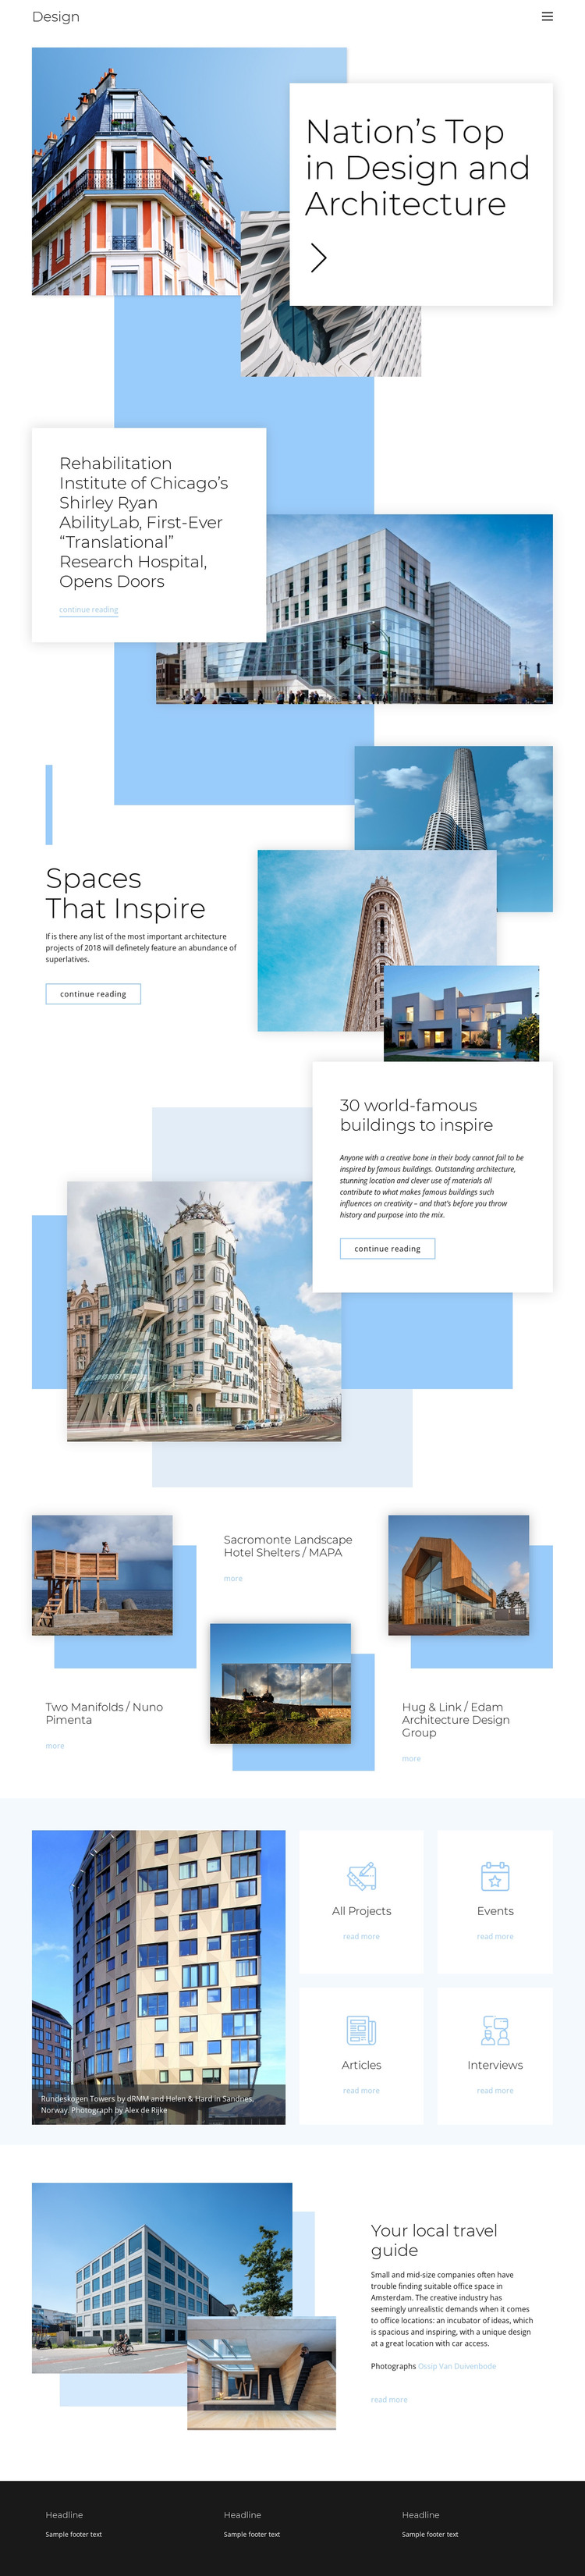 Rating for architecture Web Design